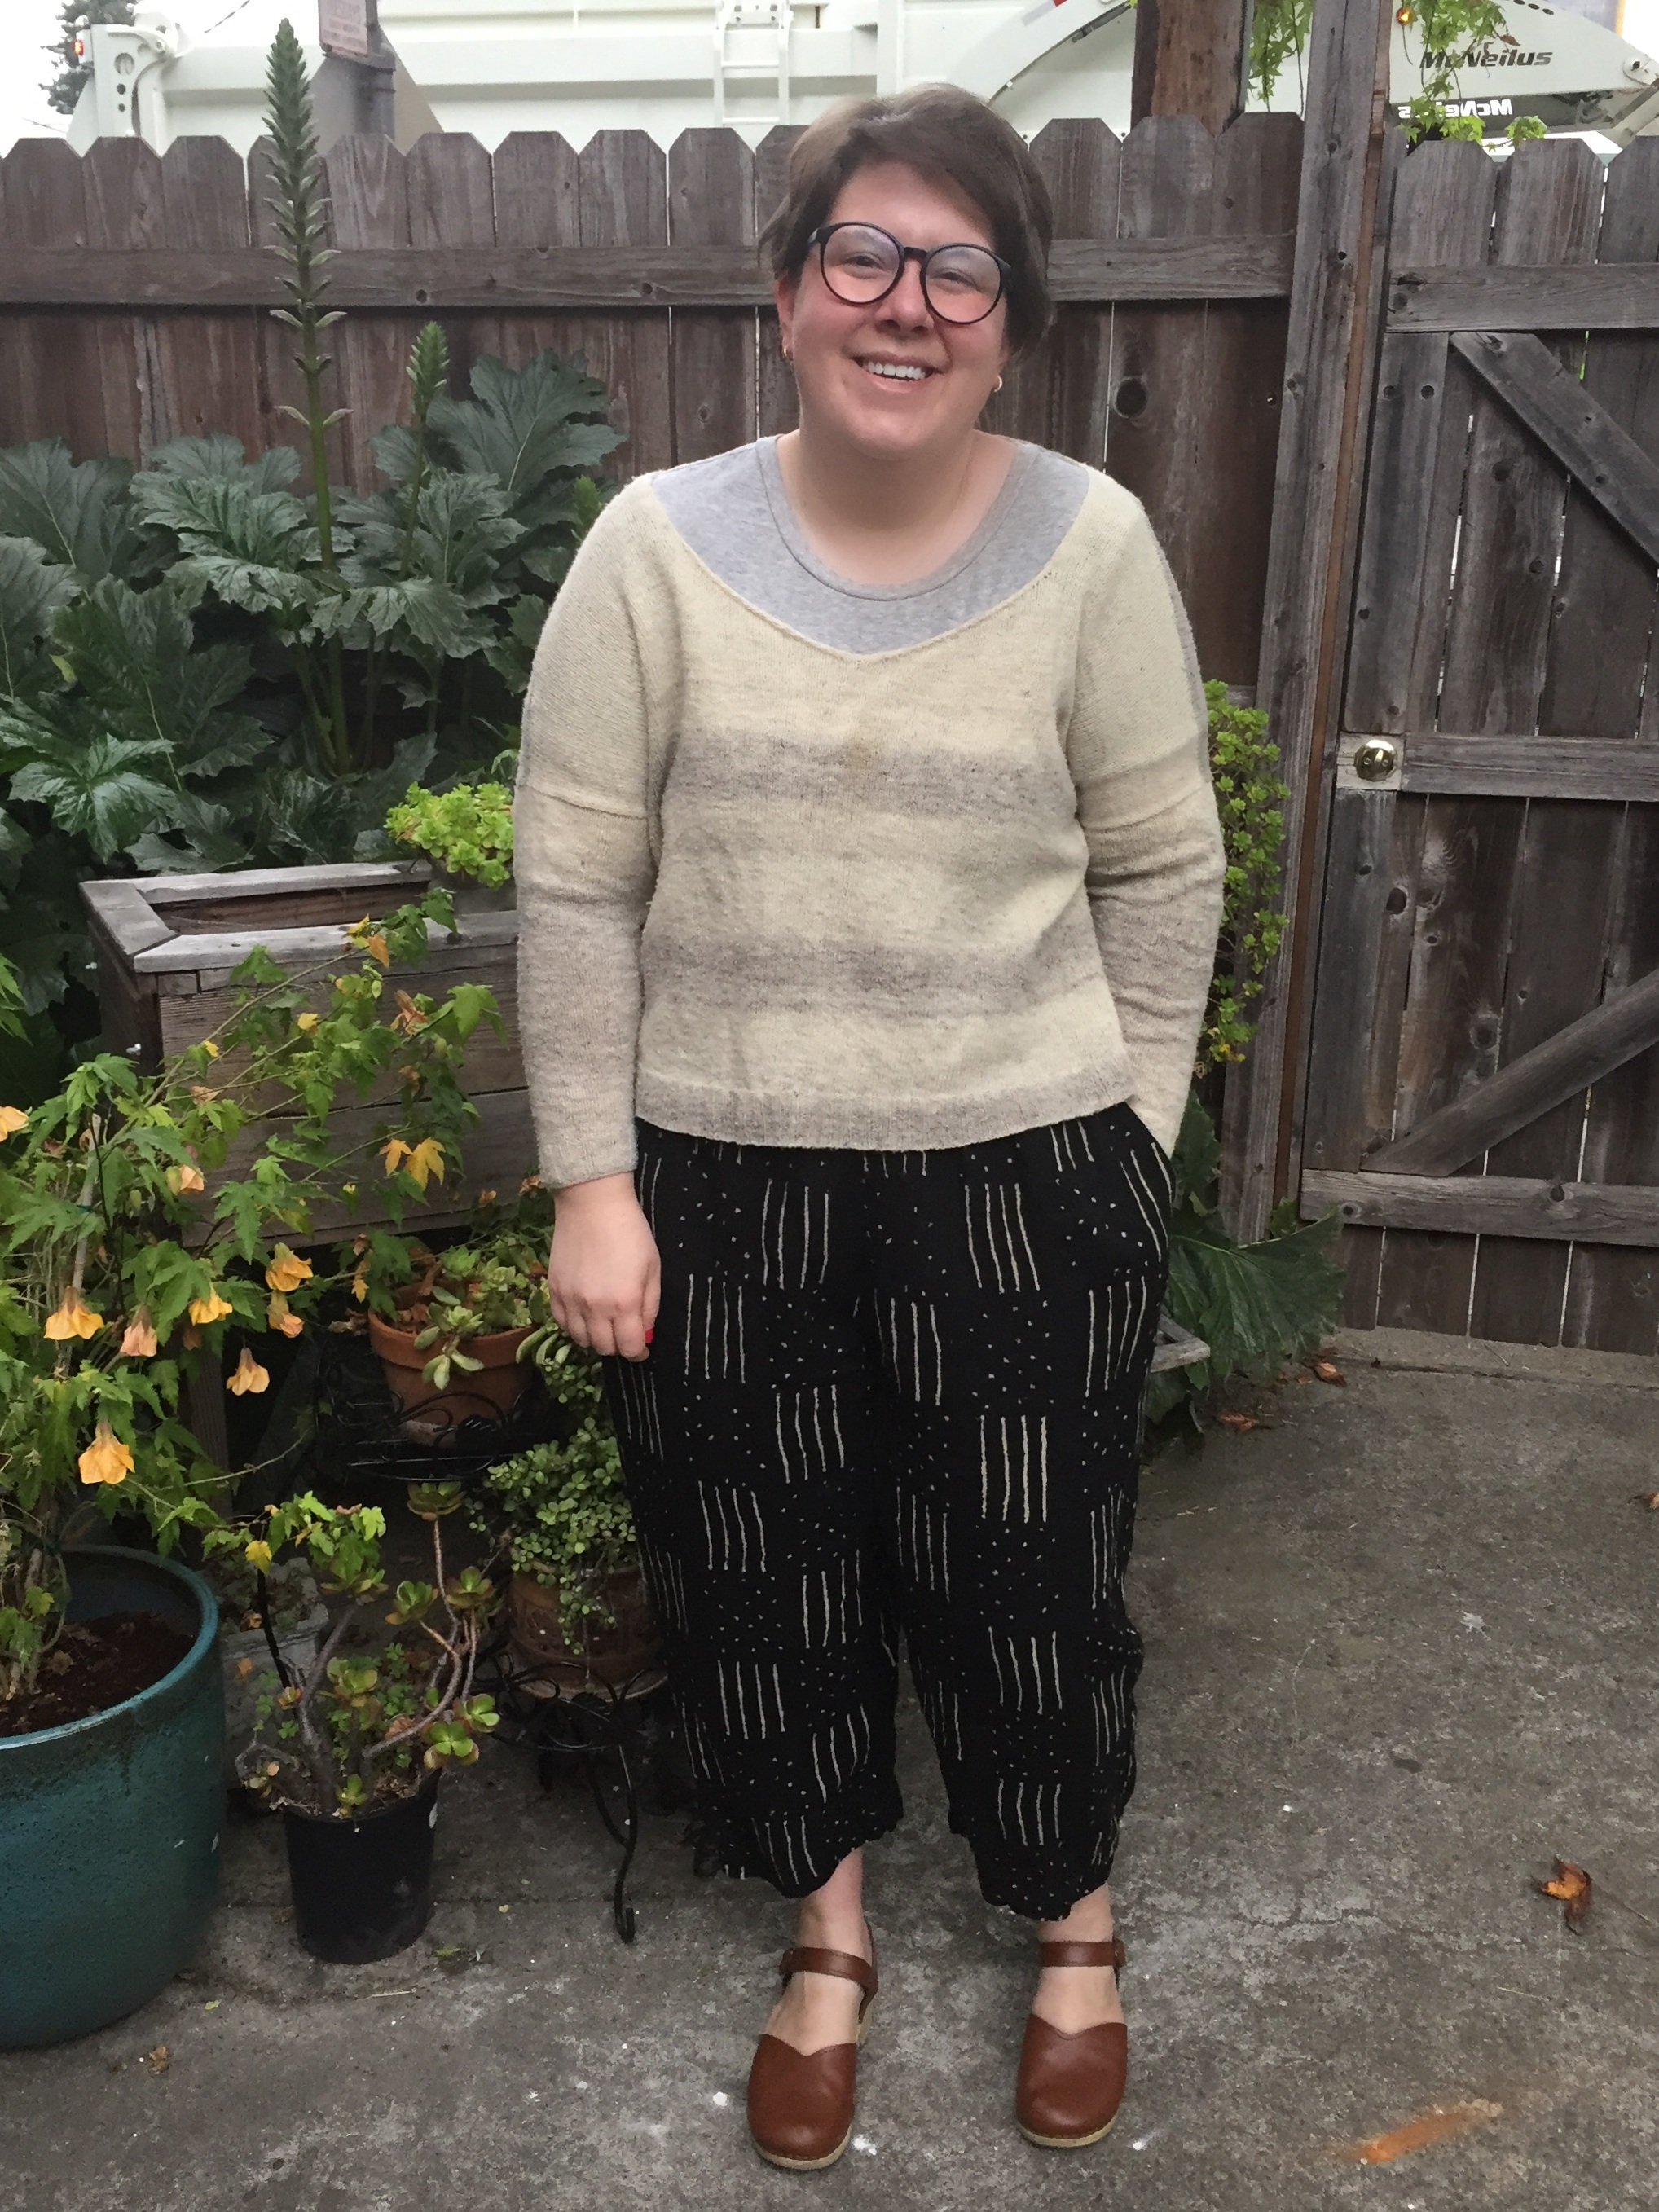 May 13: Freemantle Pants in linen and modified Svelge Pullover in Flock from A Verb for Keeping Warm.